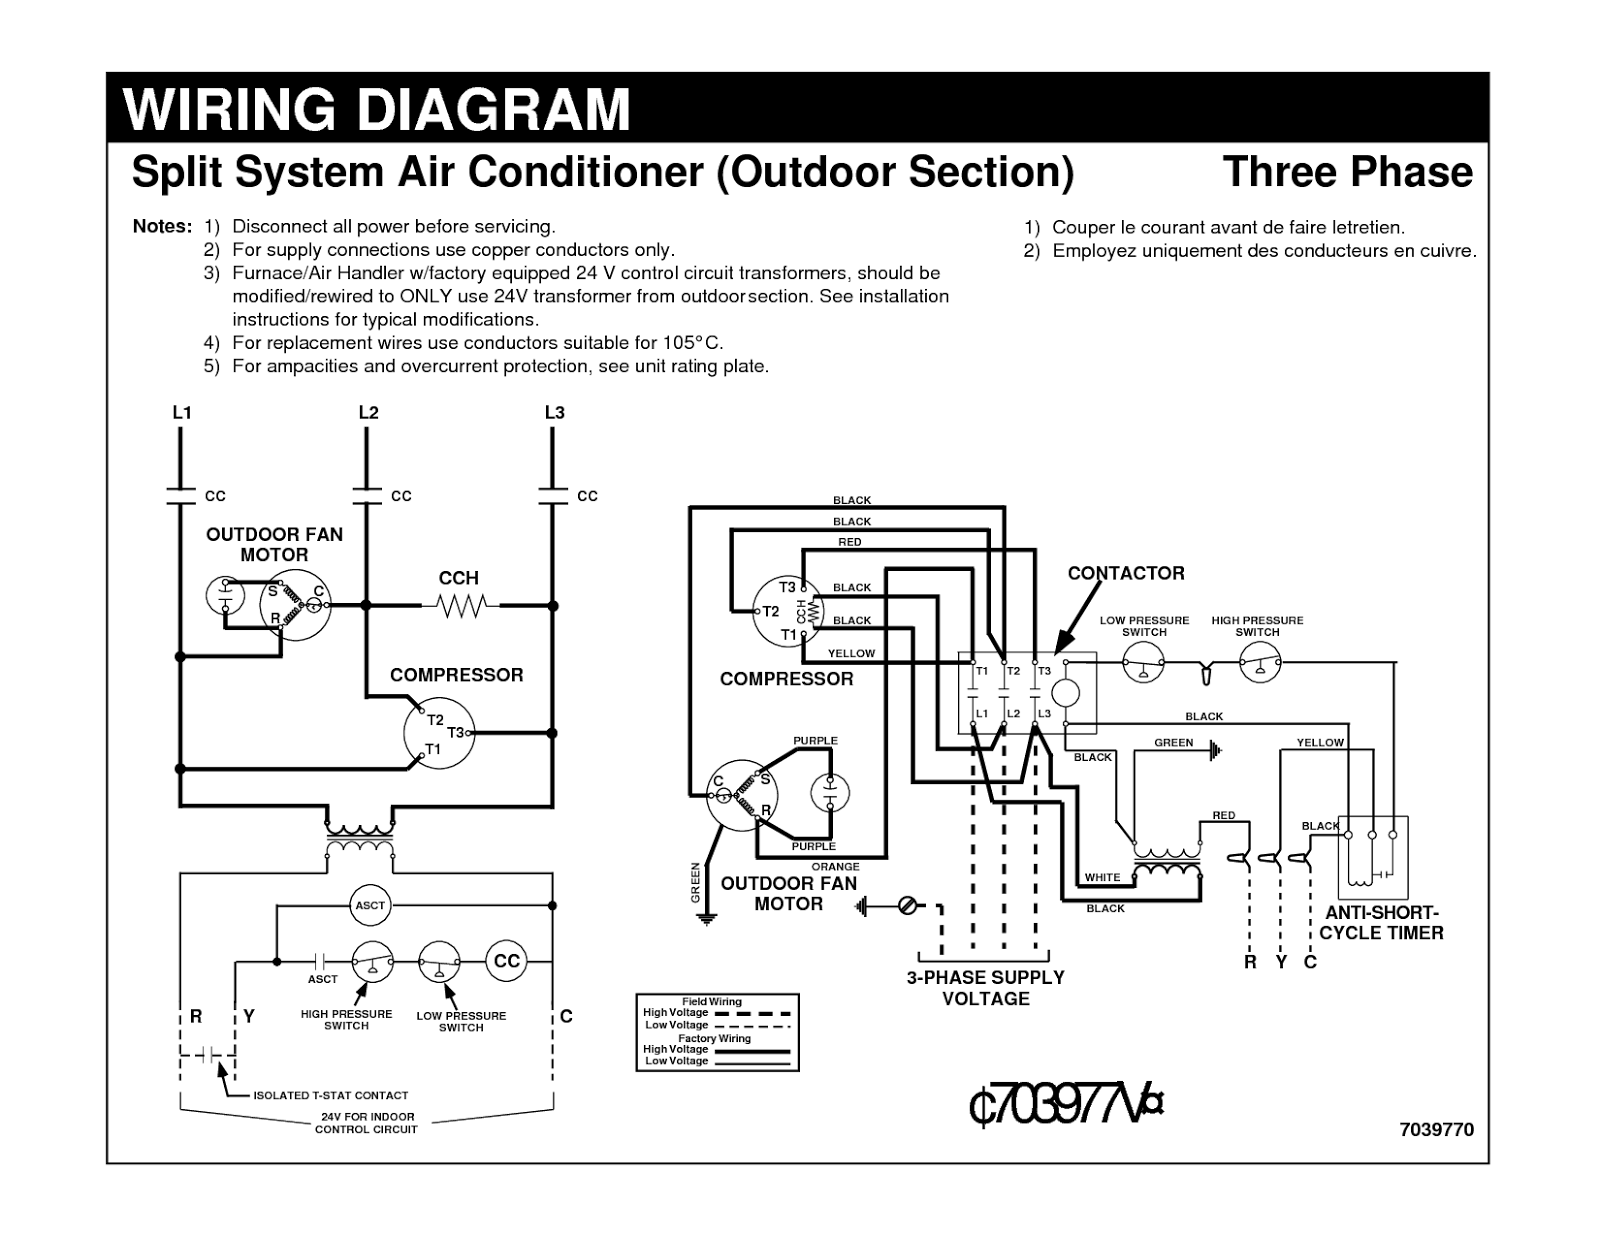 1982 El Camino Air Conditioning Wiring Diagram Data Schema 1978 Chevrolet Schematic Diagrams Conditioners Circuit Symbols U2022 Rh Stripgore Com 1983